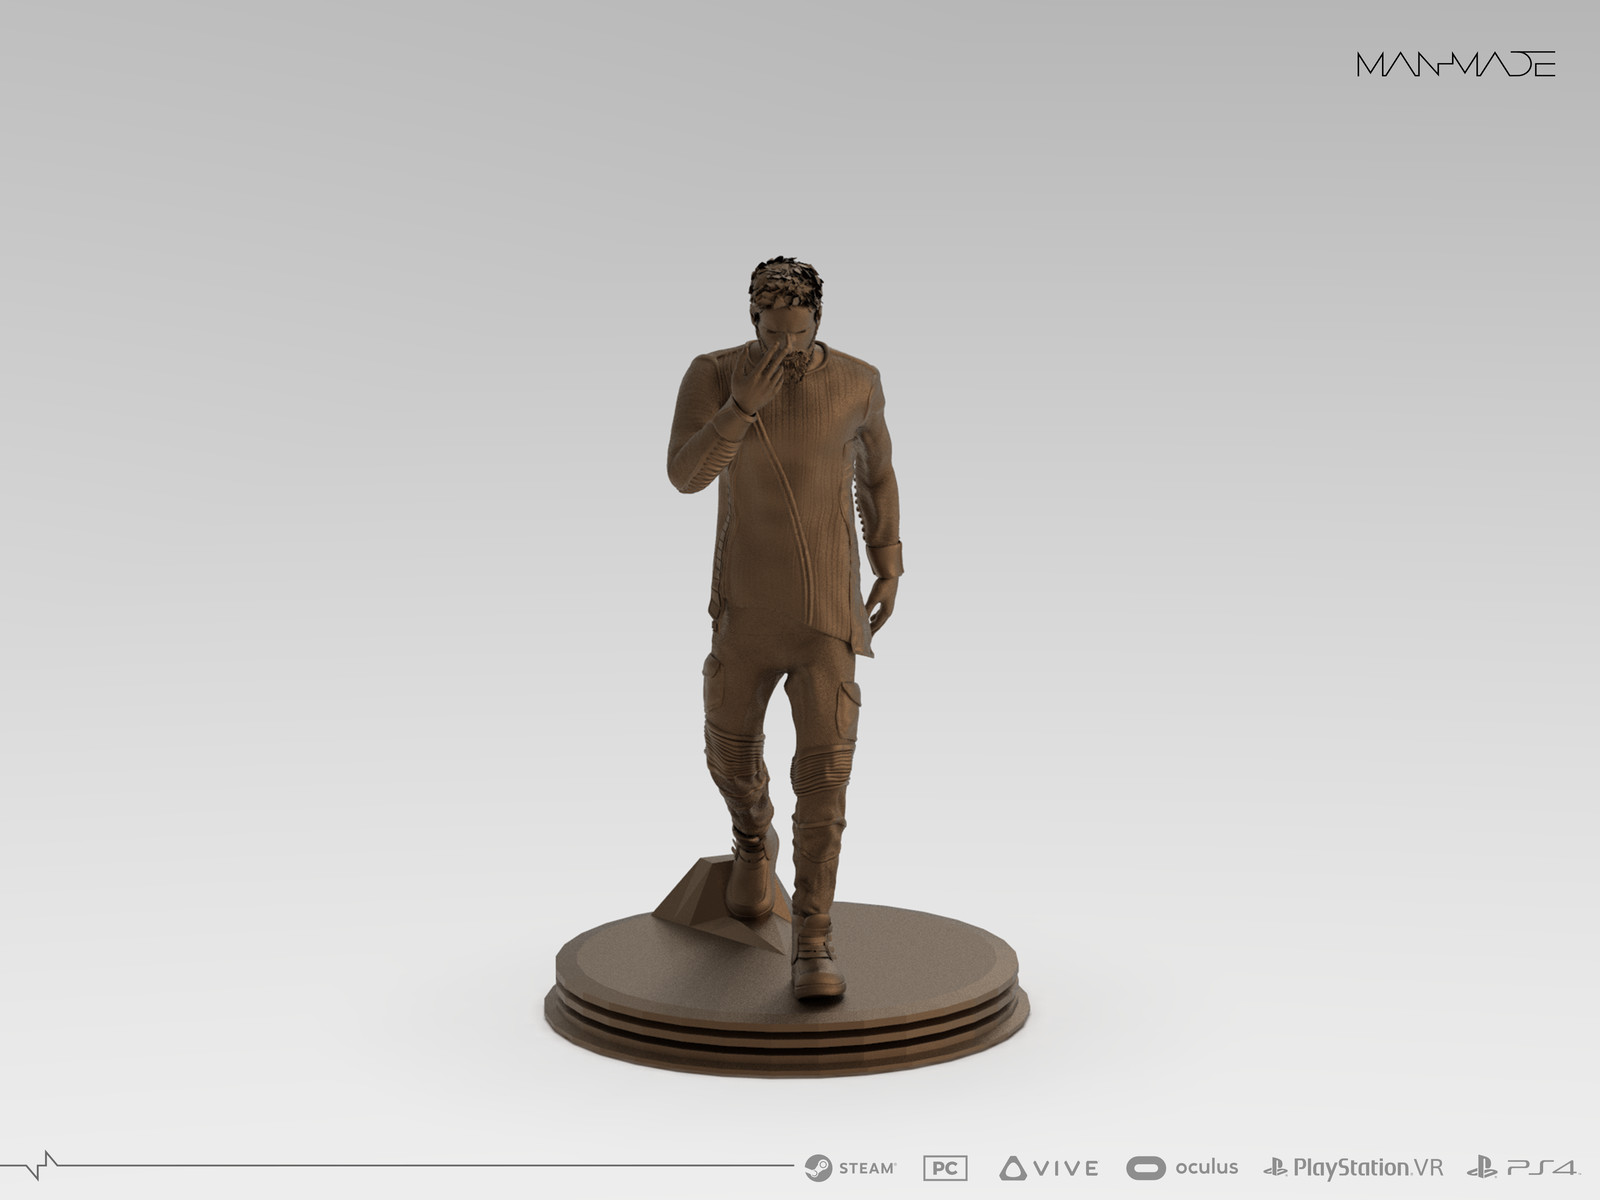 William Kaan Statue Design for Kickstarter Reward for ManMade: SciFi Action Adventure Game (15cm)